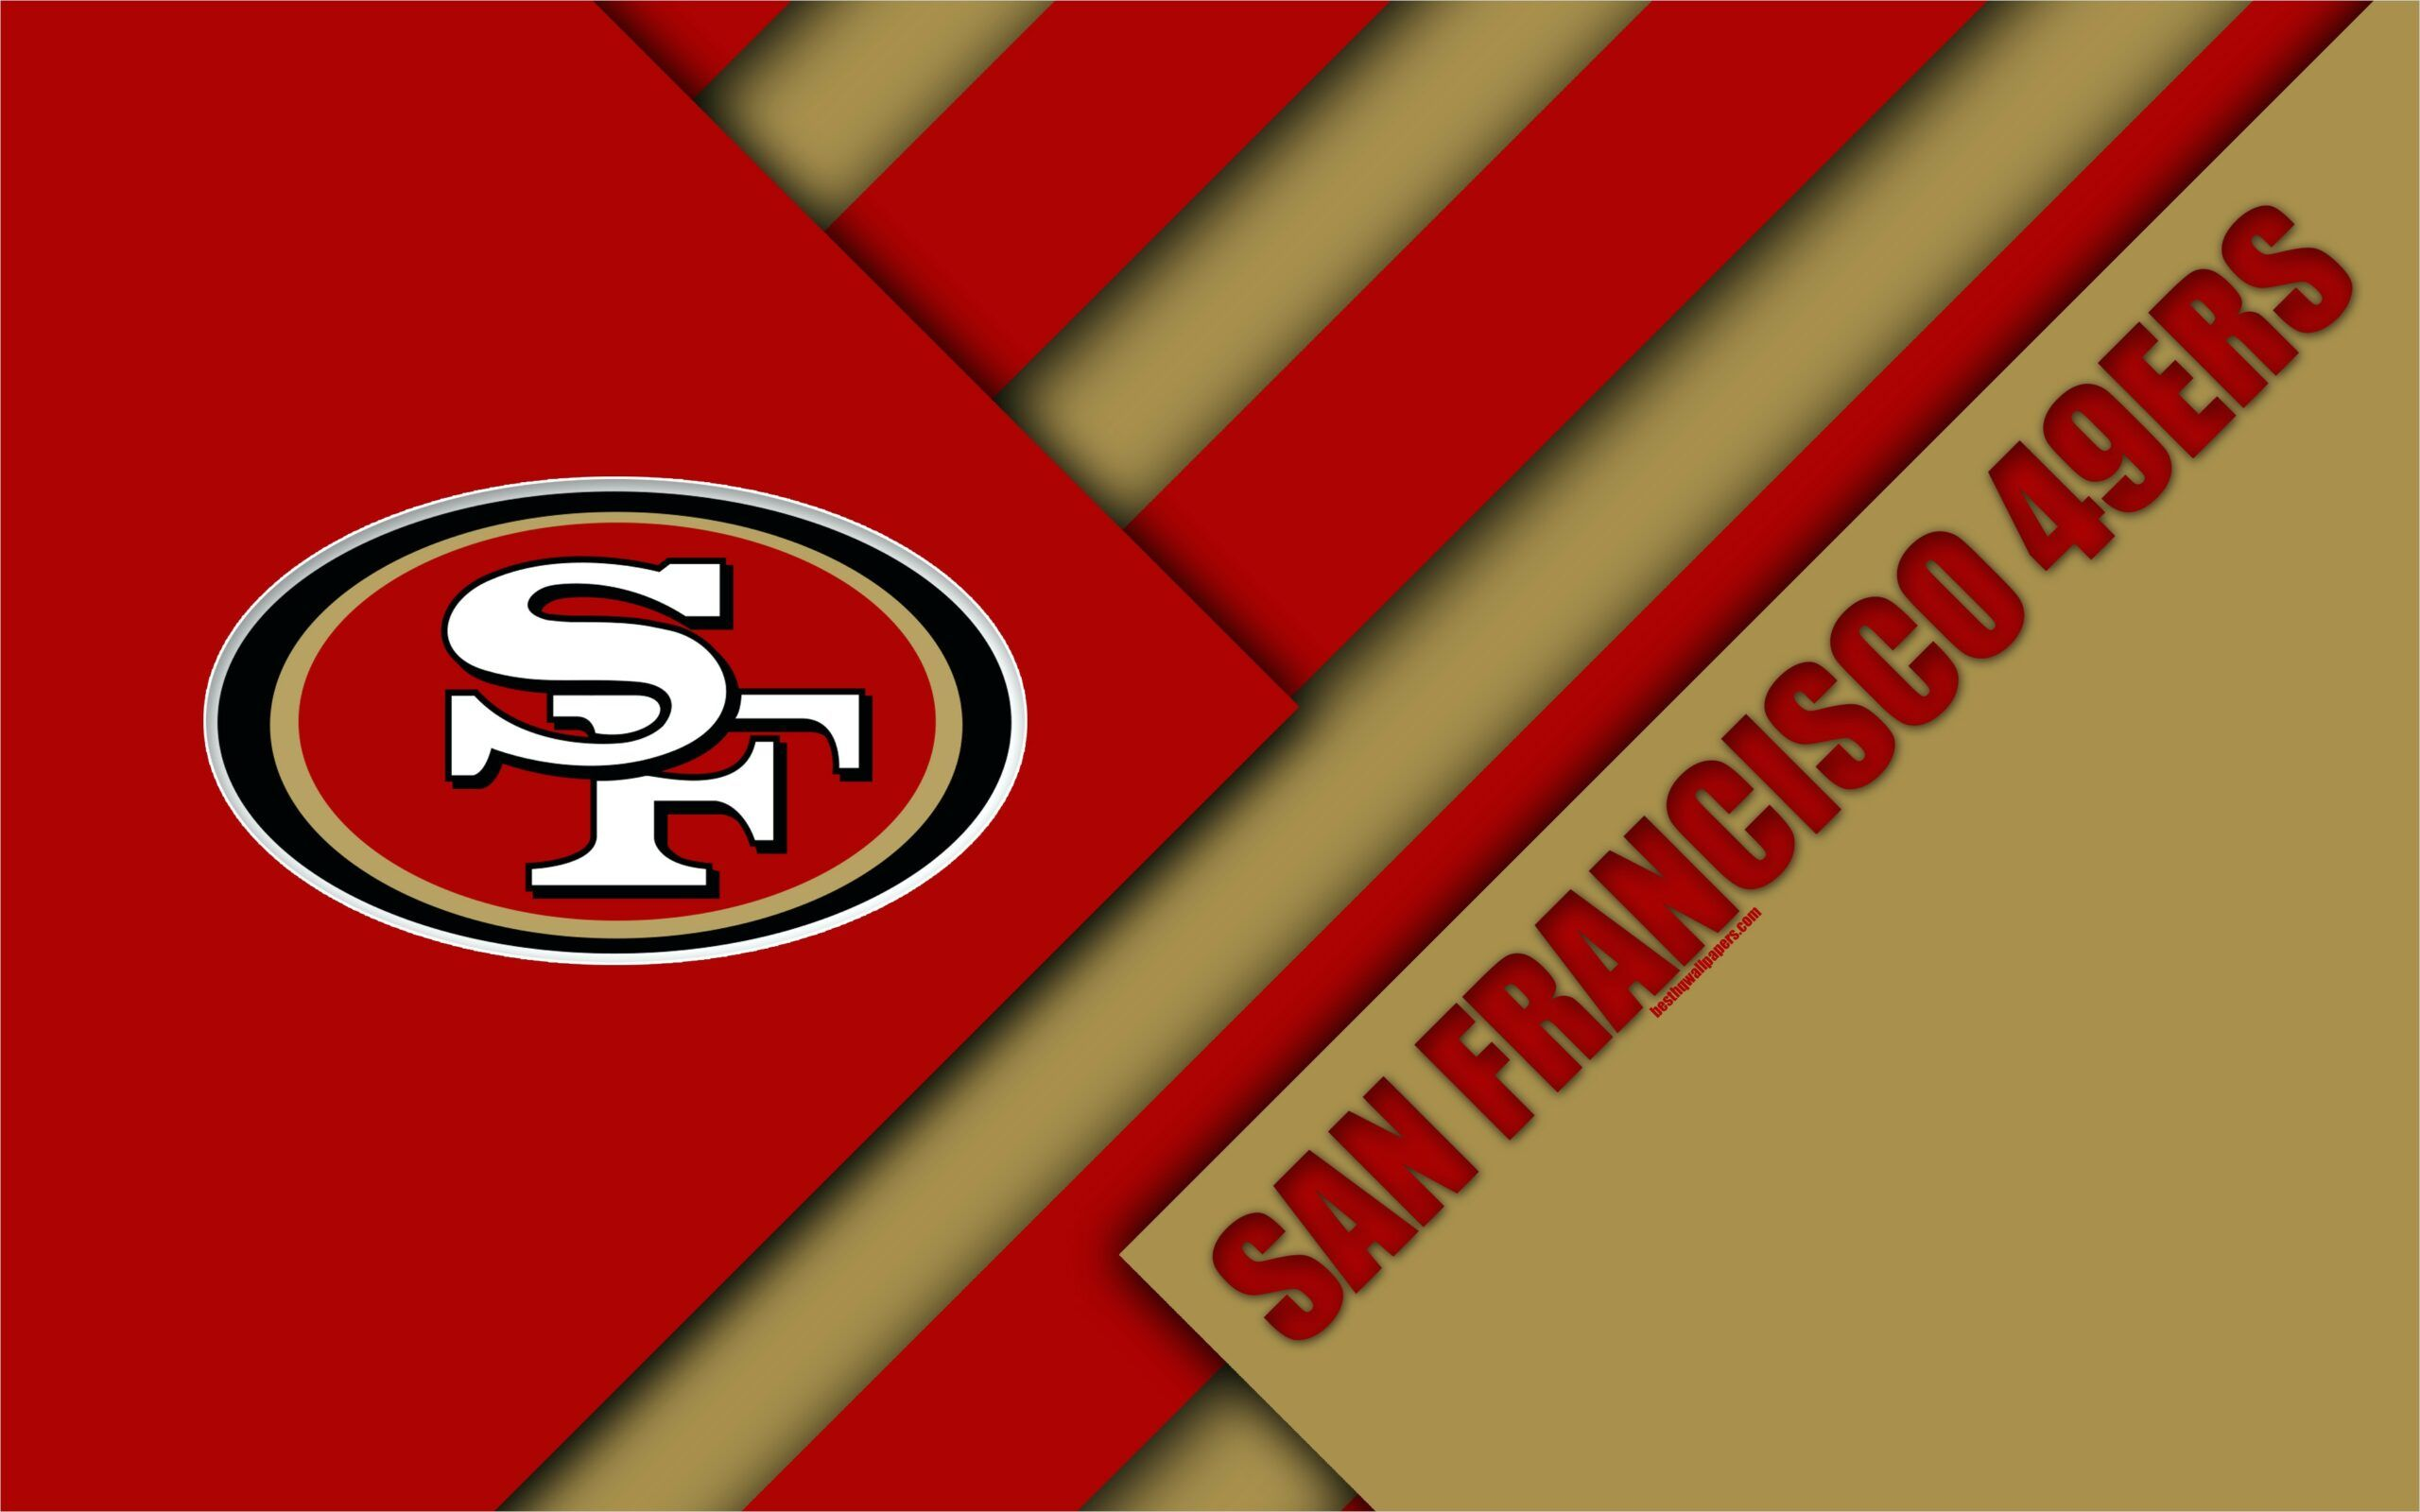 49ers Background Wallpaper 4k 2019 In 2020 San Francisco 49ers 49ers Nfc West